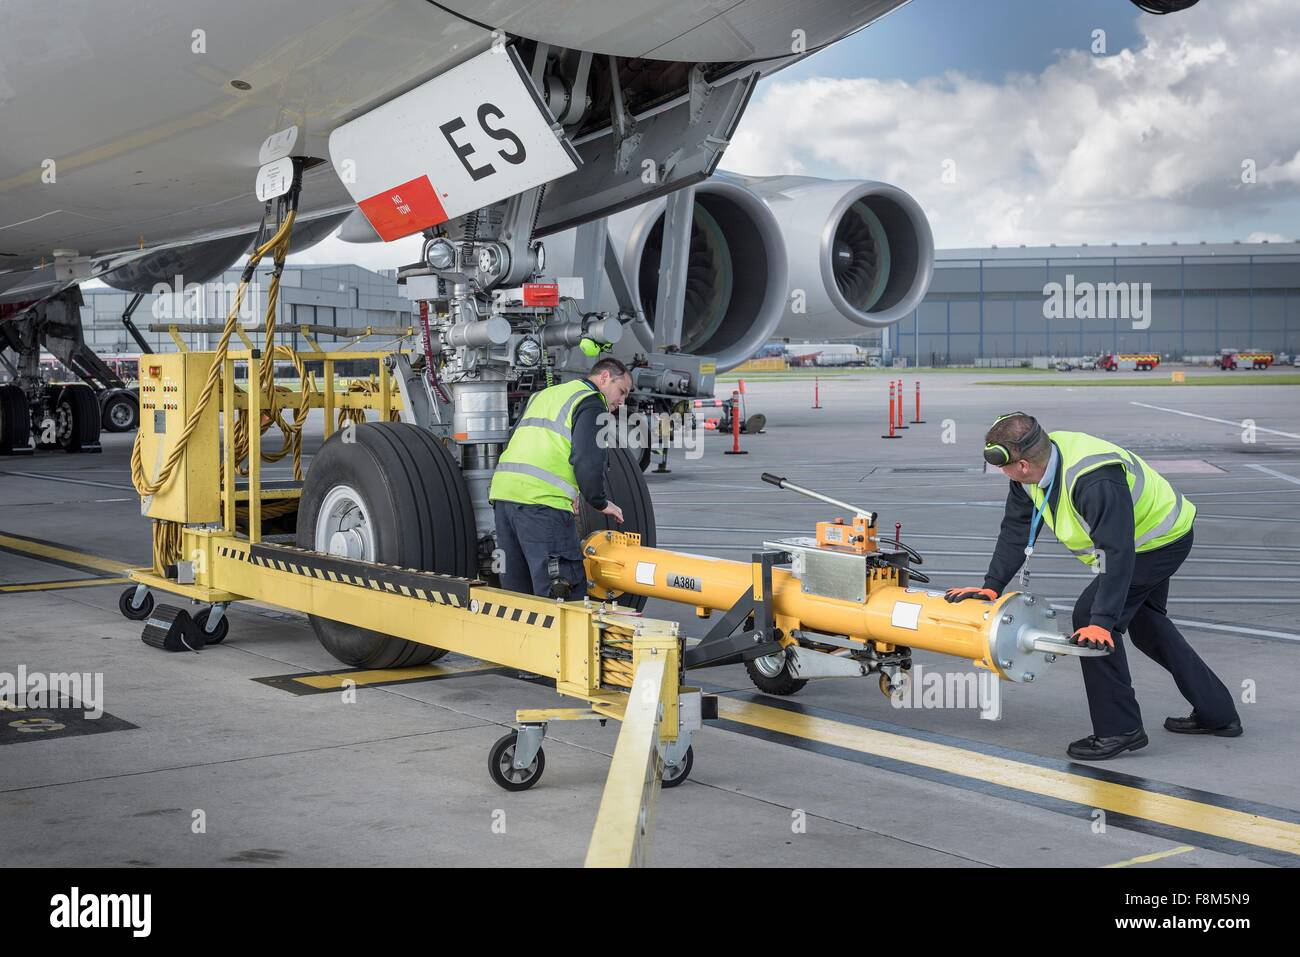 Ground crew fixing tow bar onto A380 aircraft at airport Stock Photo